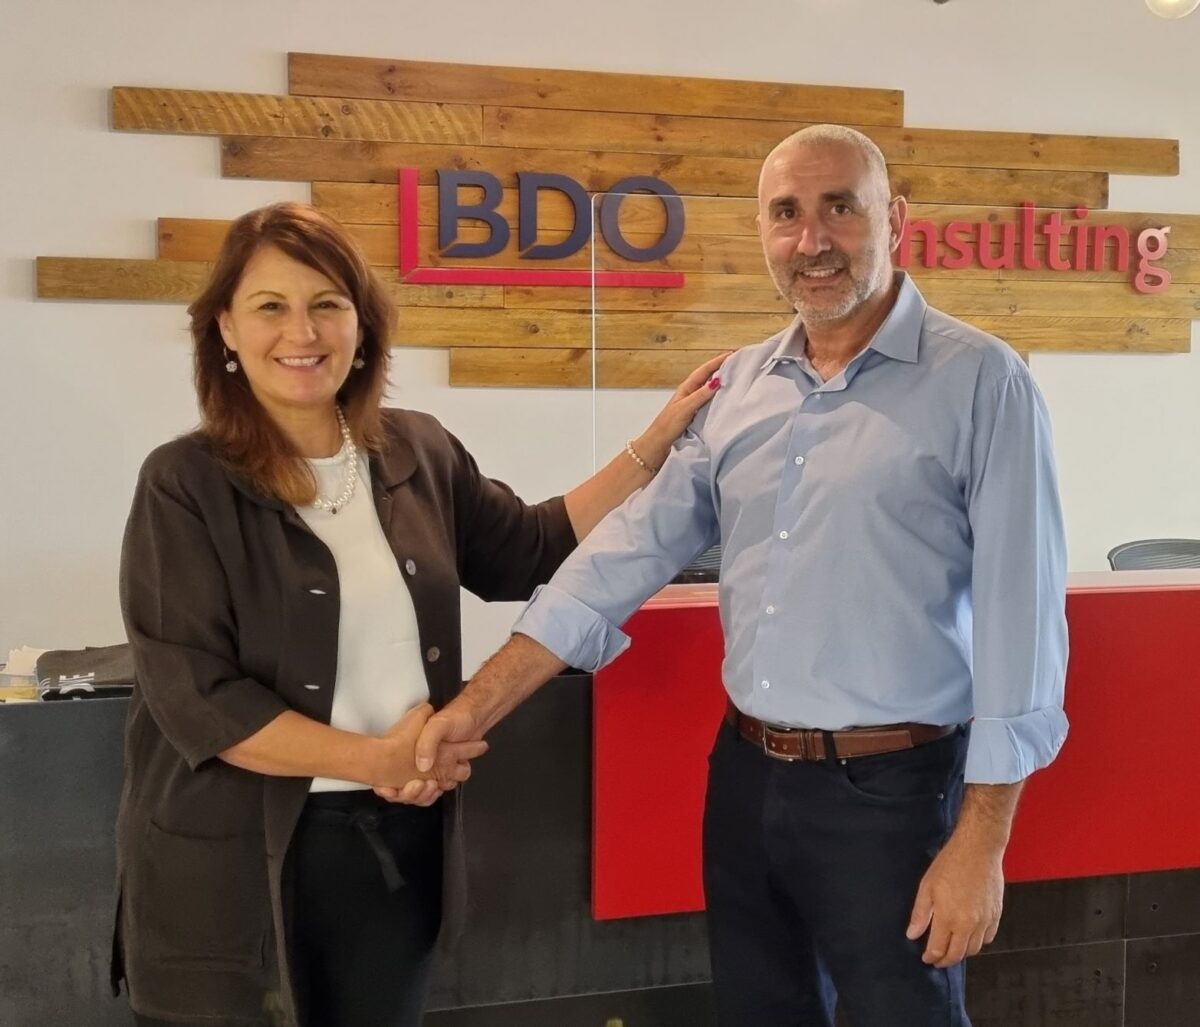 Anat Bernstein-Reich will head India-Israel Investment Banking and Business Development at BDO Israel